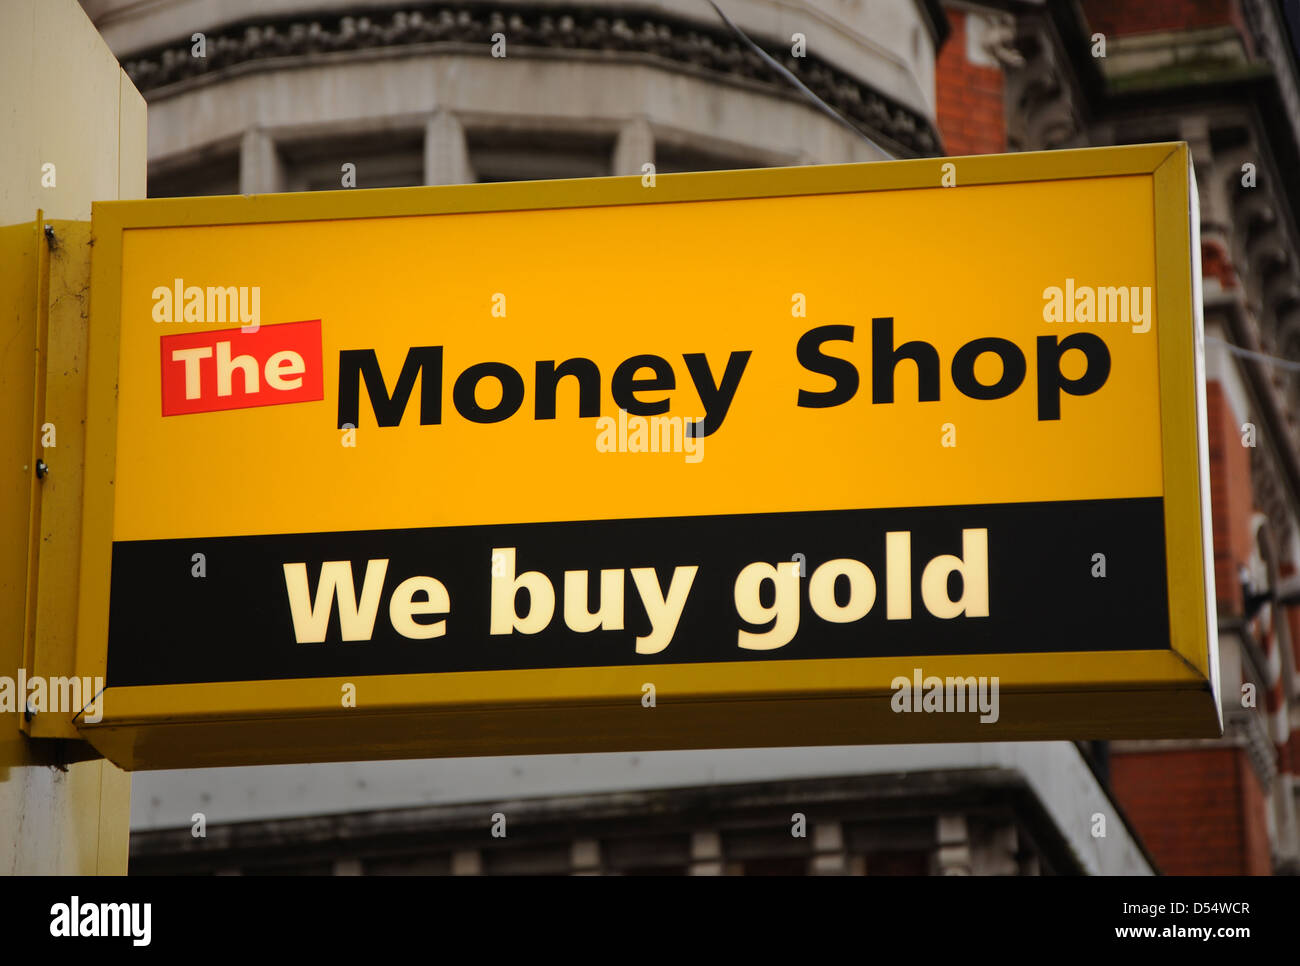 The Money Shop, We Buy Gold, sign, Granby Street, Leicester, England, UK - Stock Image